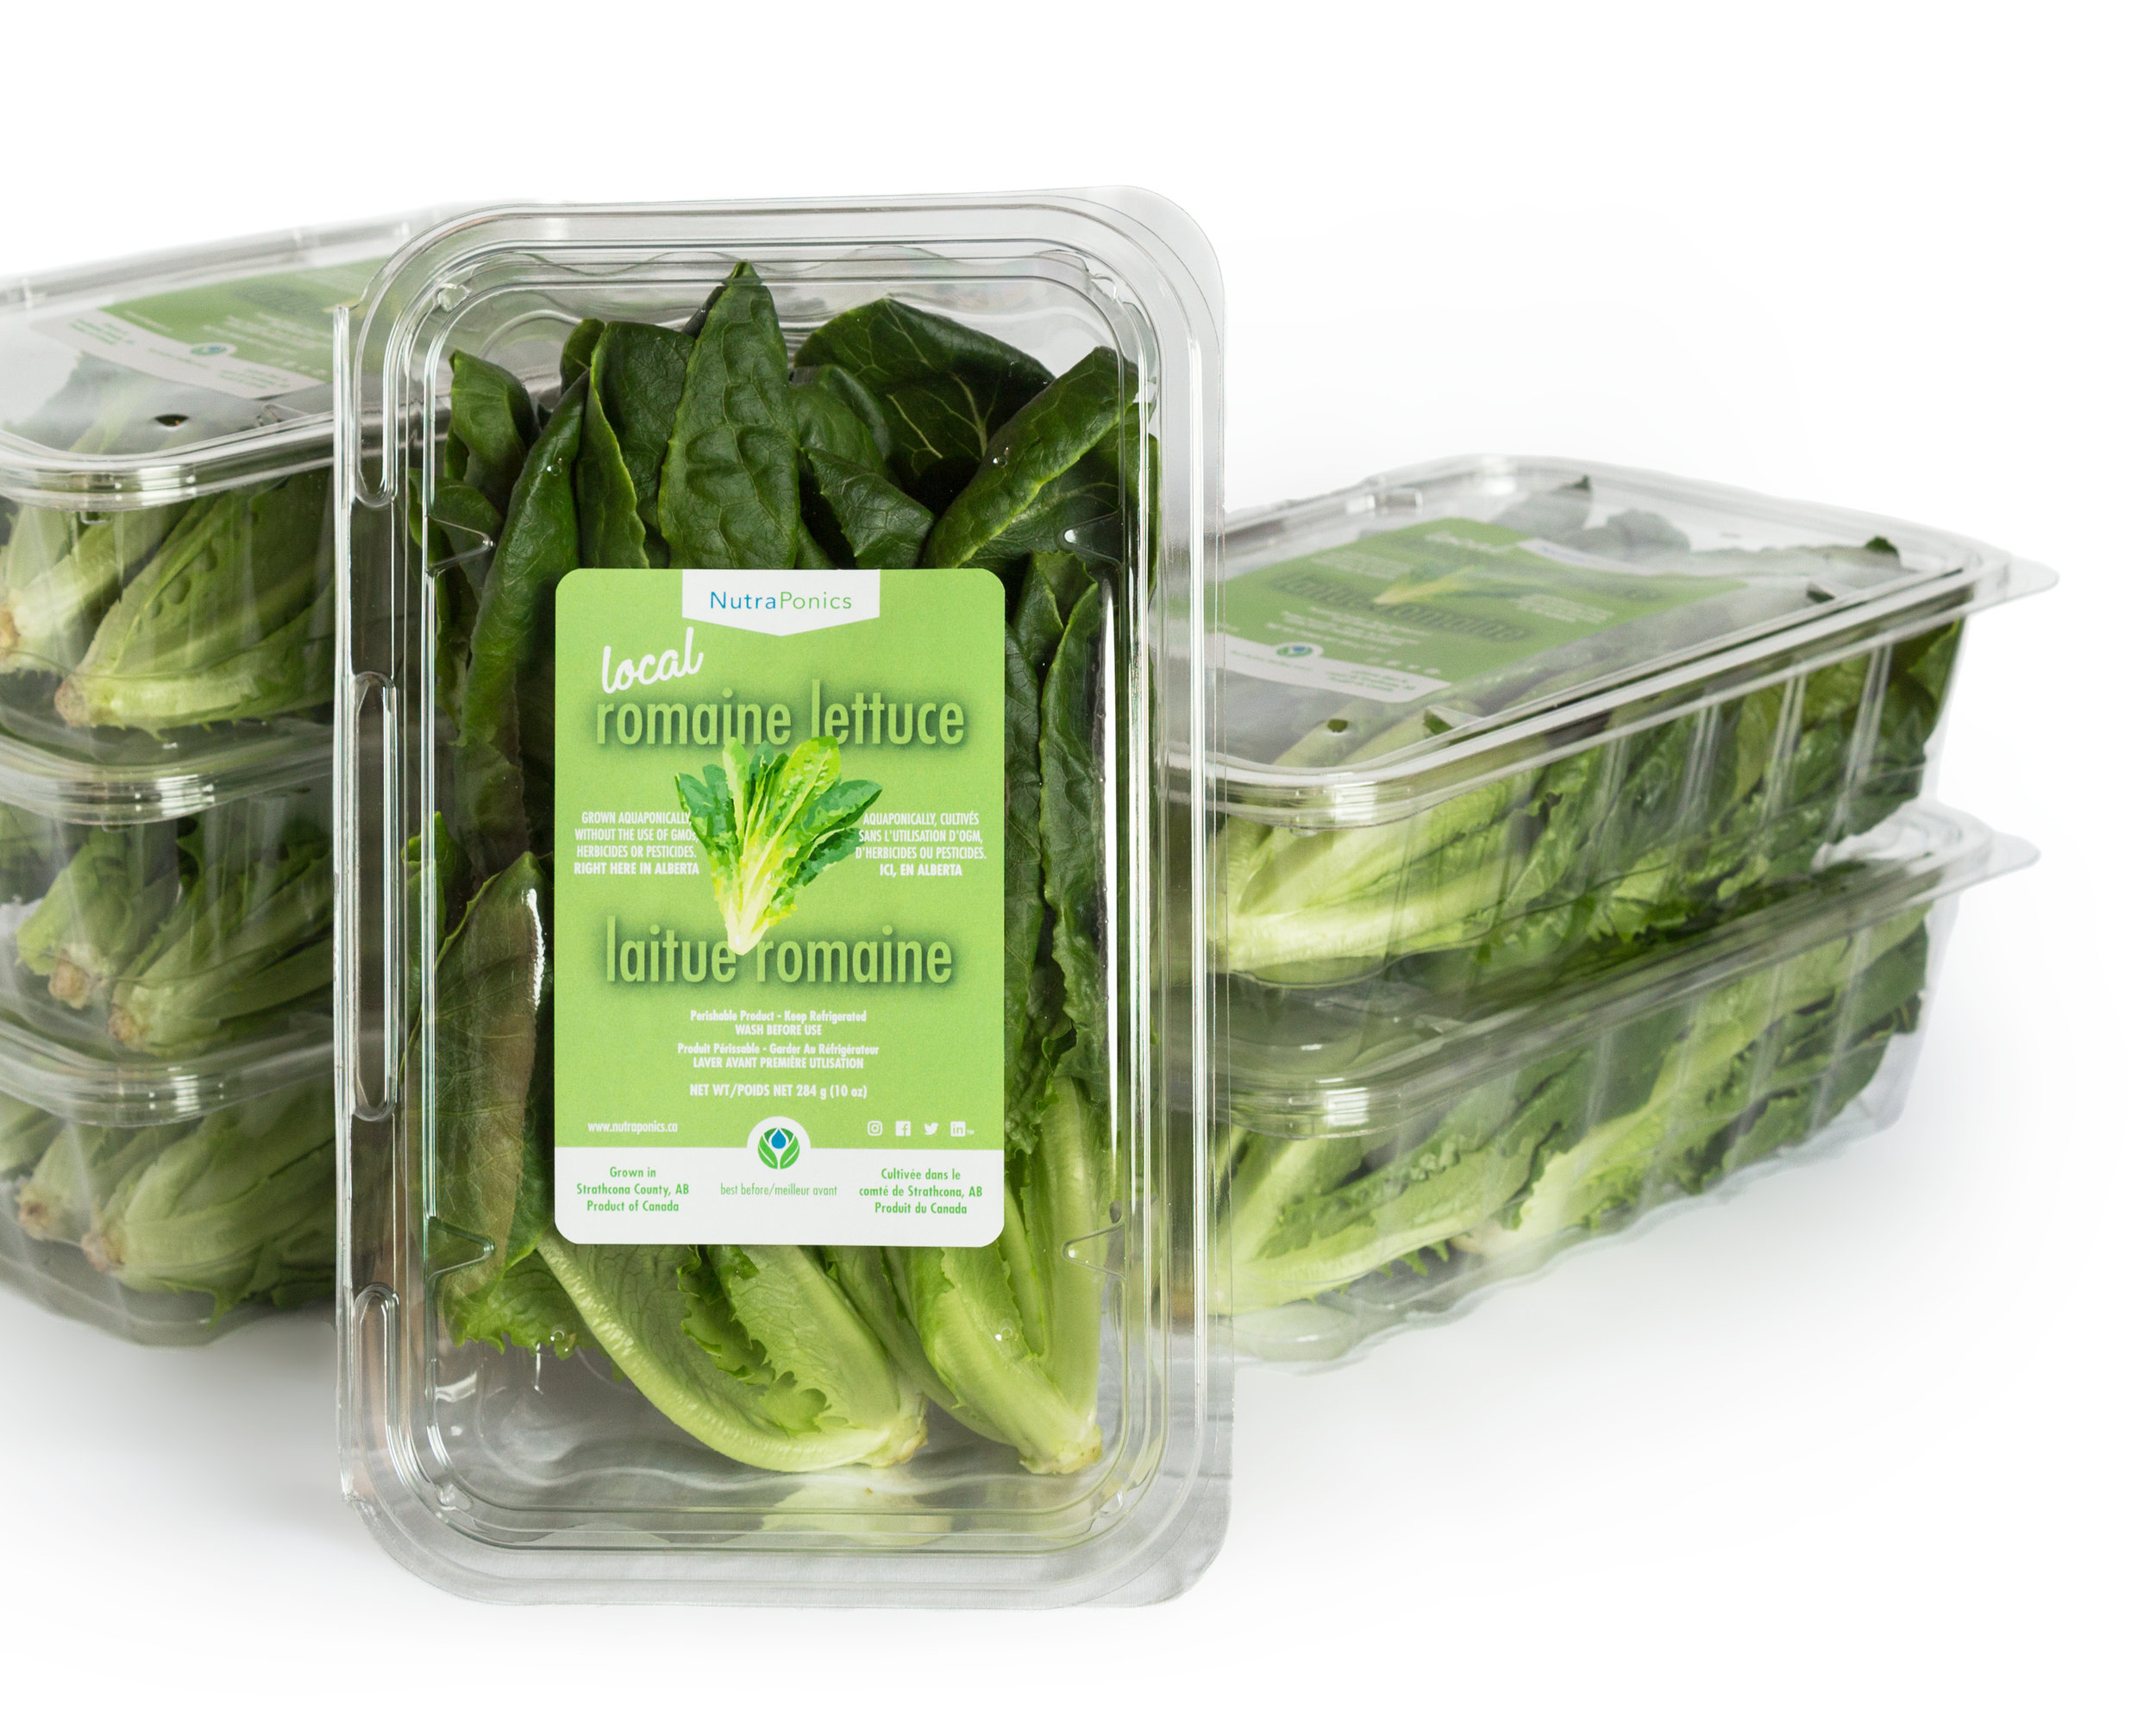 romaine lettuce - Romaine lettuce is rich in Vitamins A, C, and K. The vitamins, minerals, phytonutrients, and fibre found in romaine lettuce are wonderful reasons to start eating more of it! Our romaine lettuce makes that easy with its sweet deep flavours and satisfying crunch!